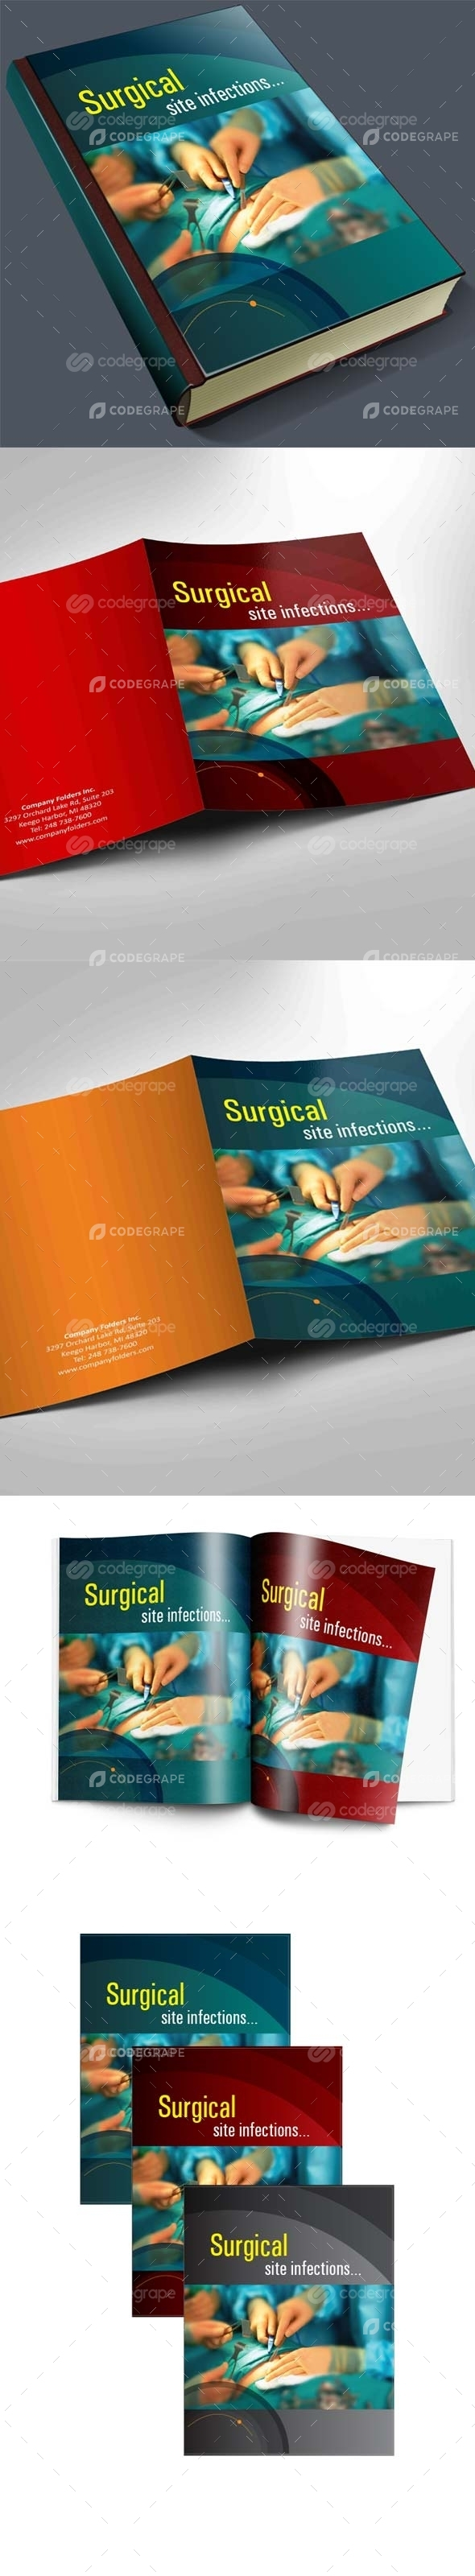 Surgical Book Cover